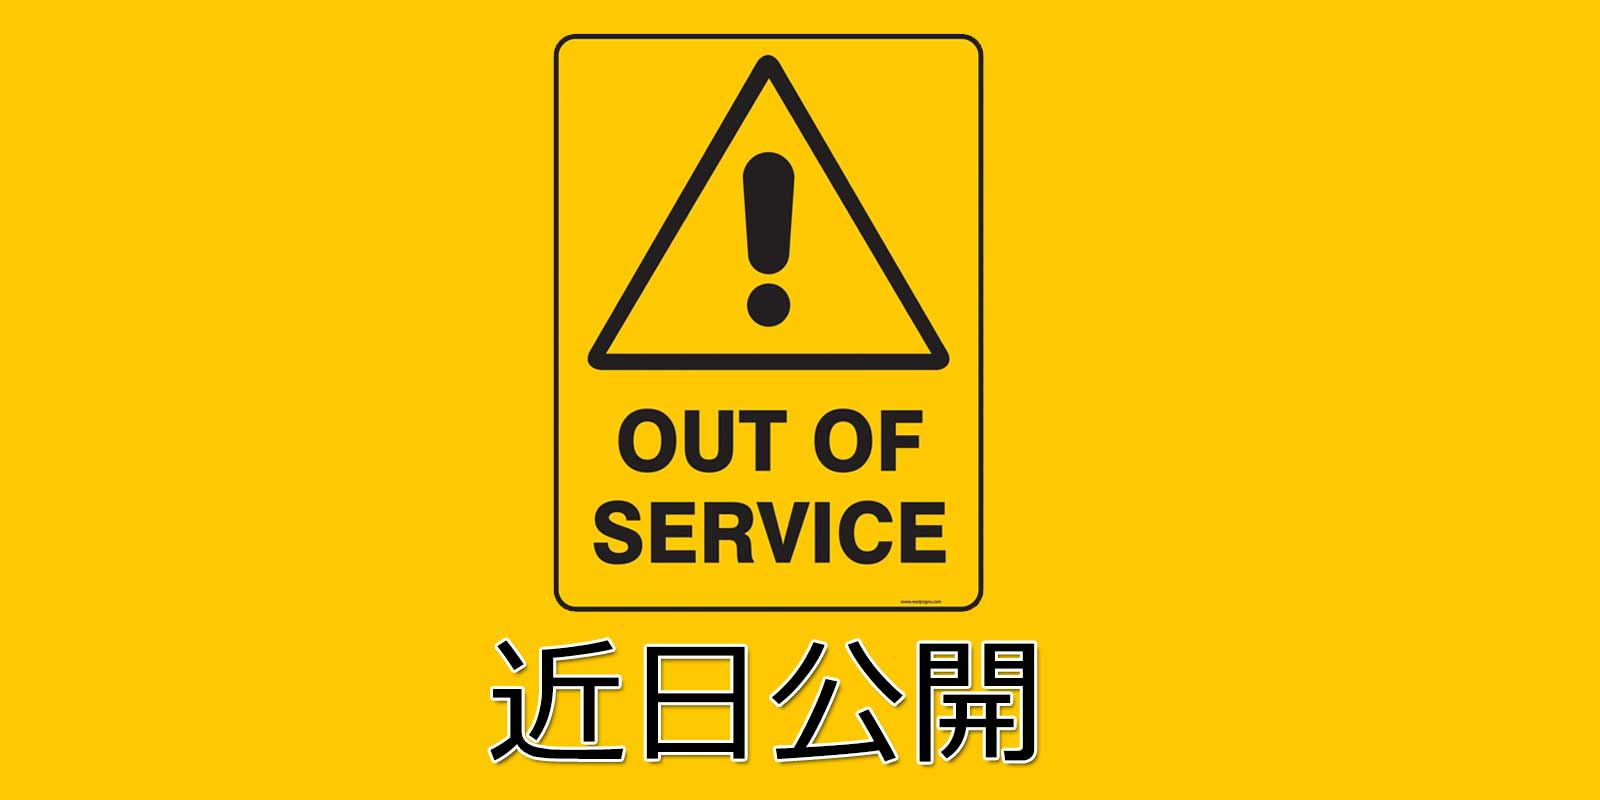 out-of-service